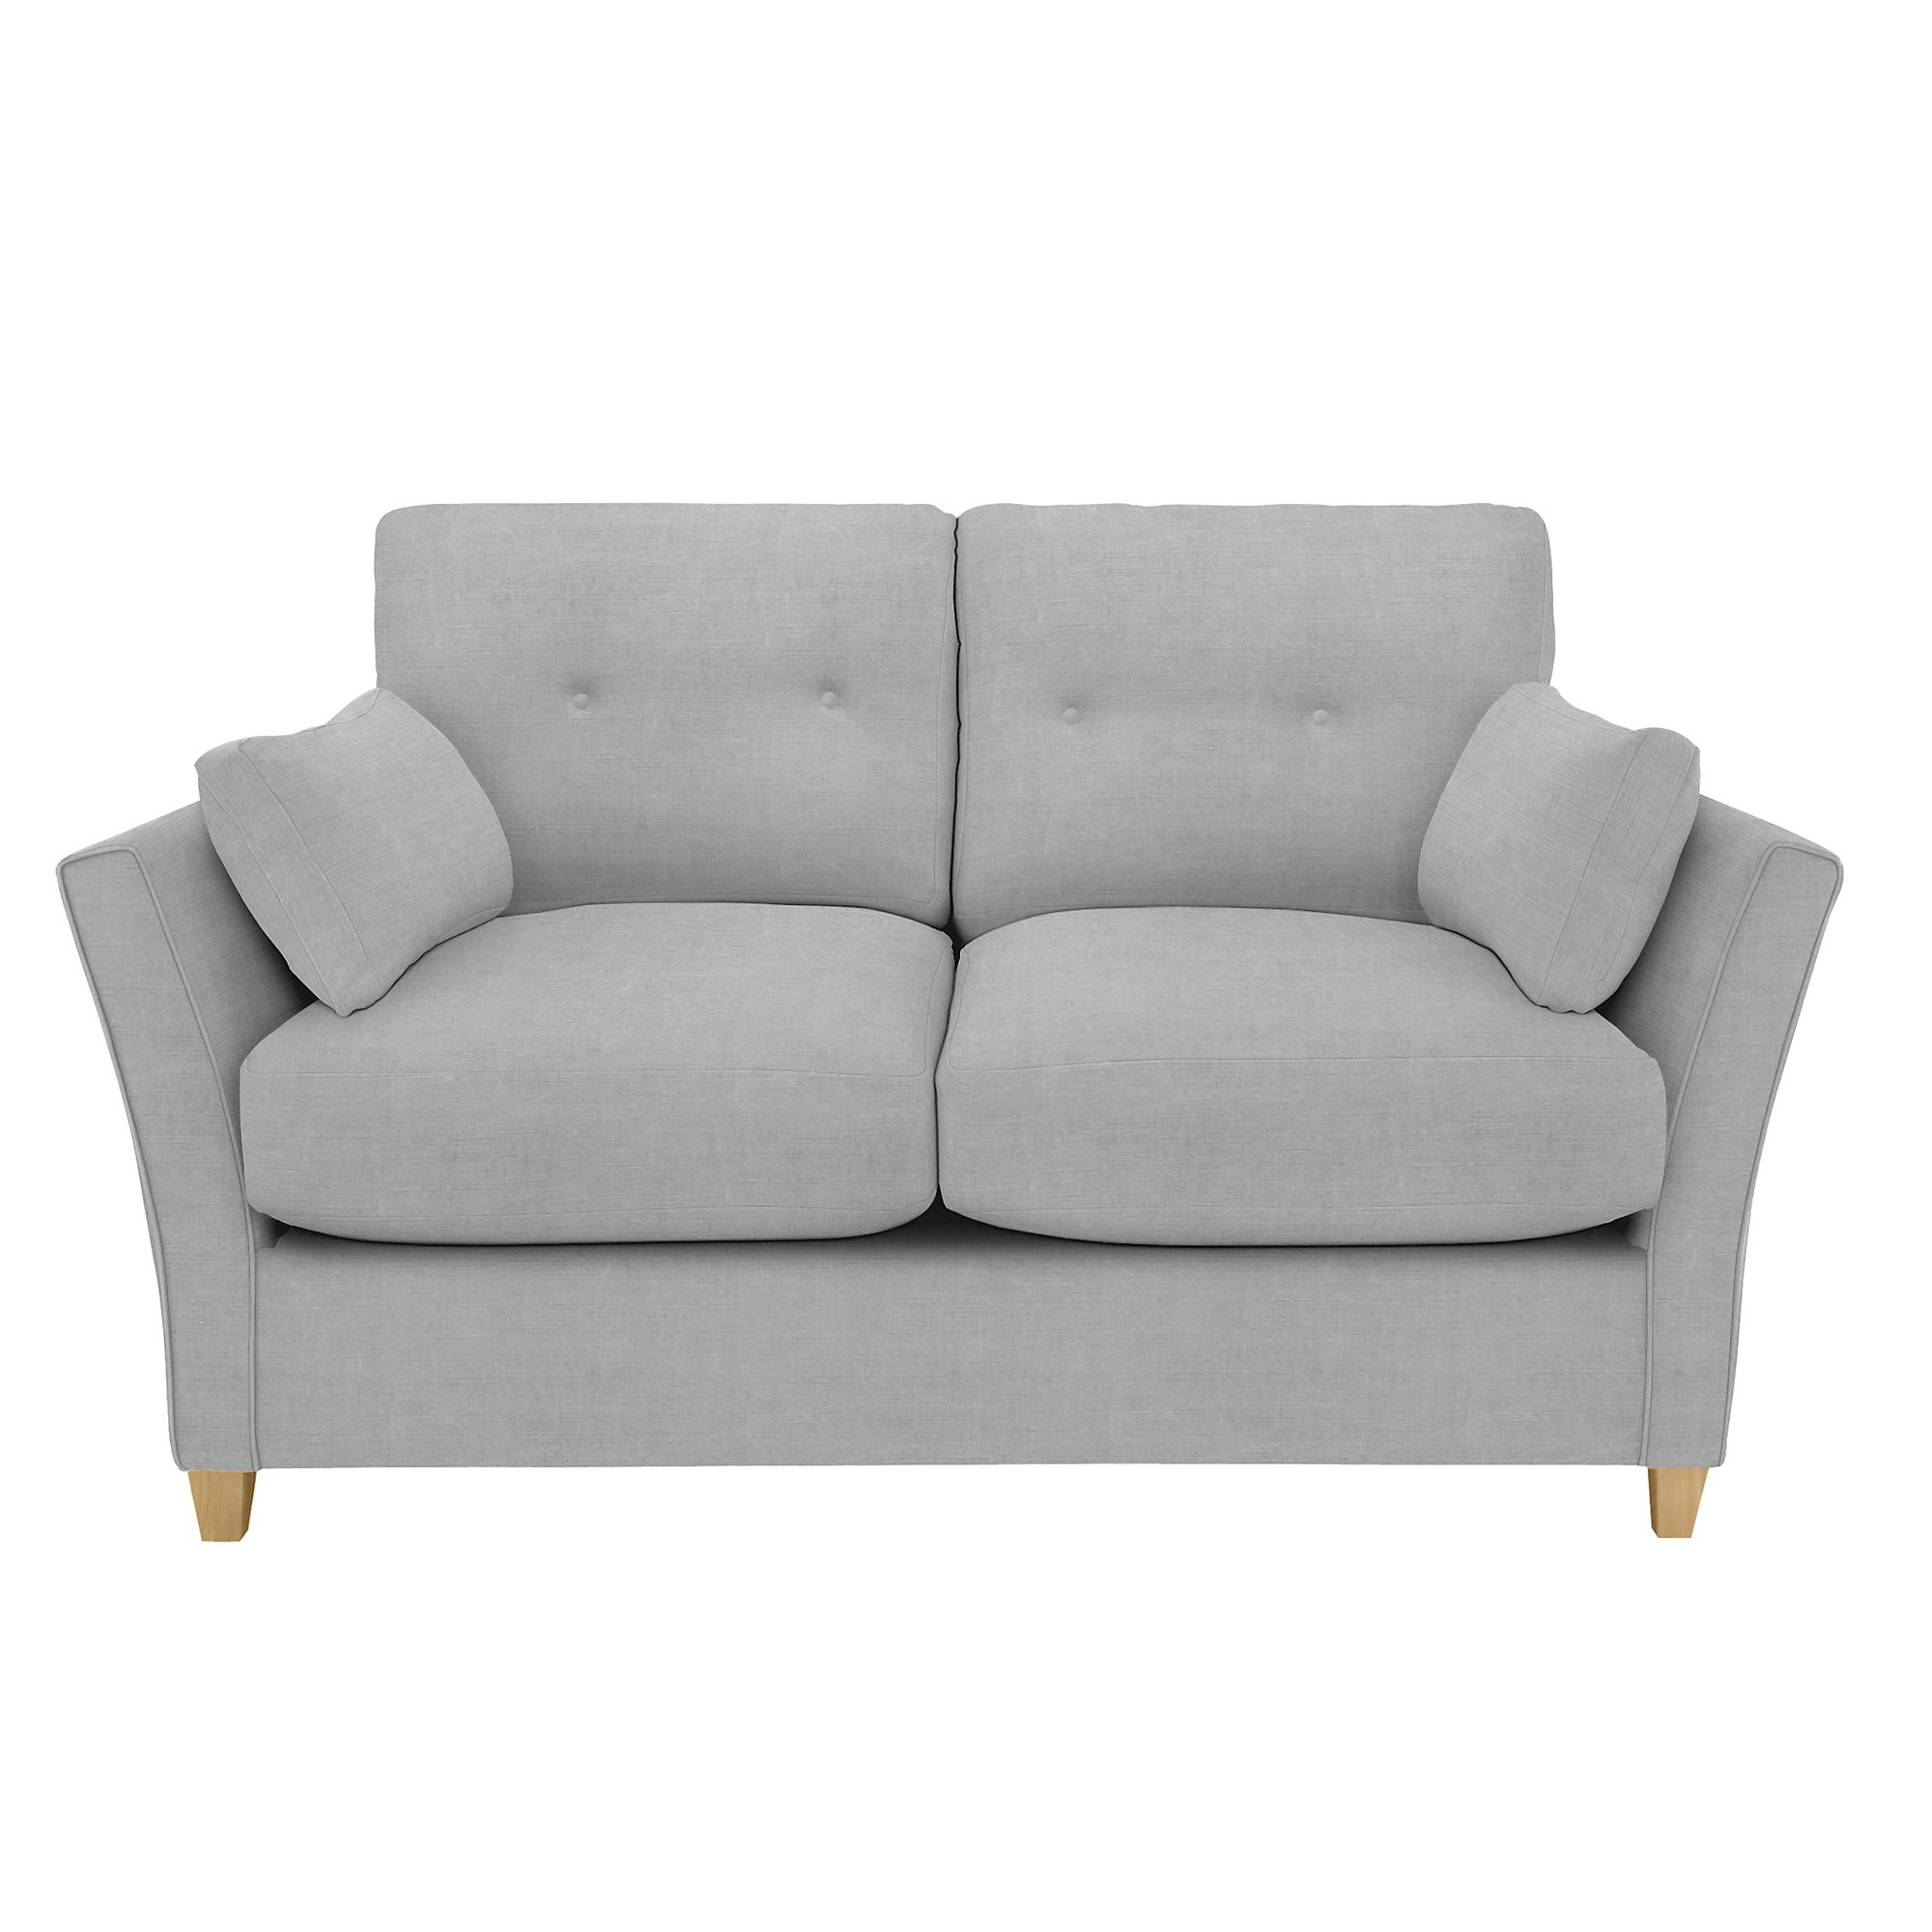 John Lewis Chopin Small Sofa Review Best Buy Review